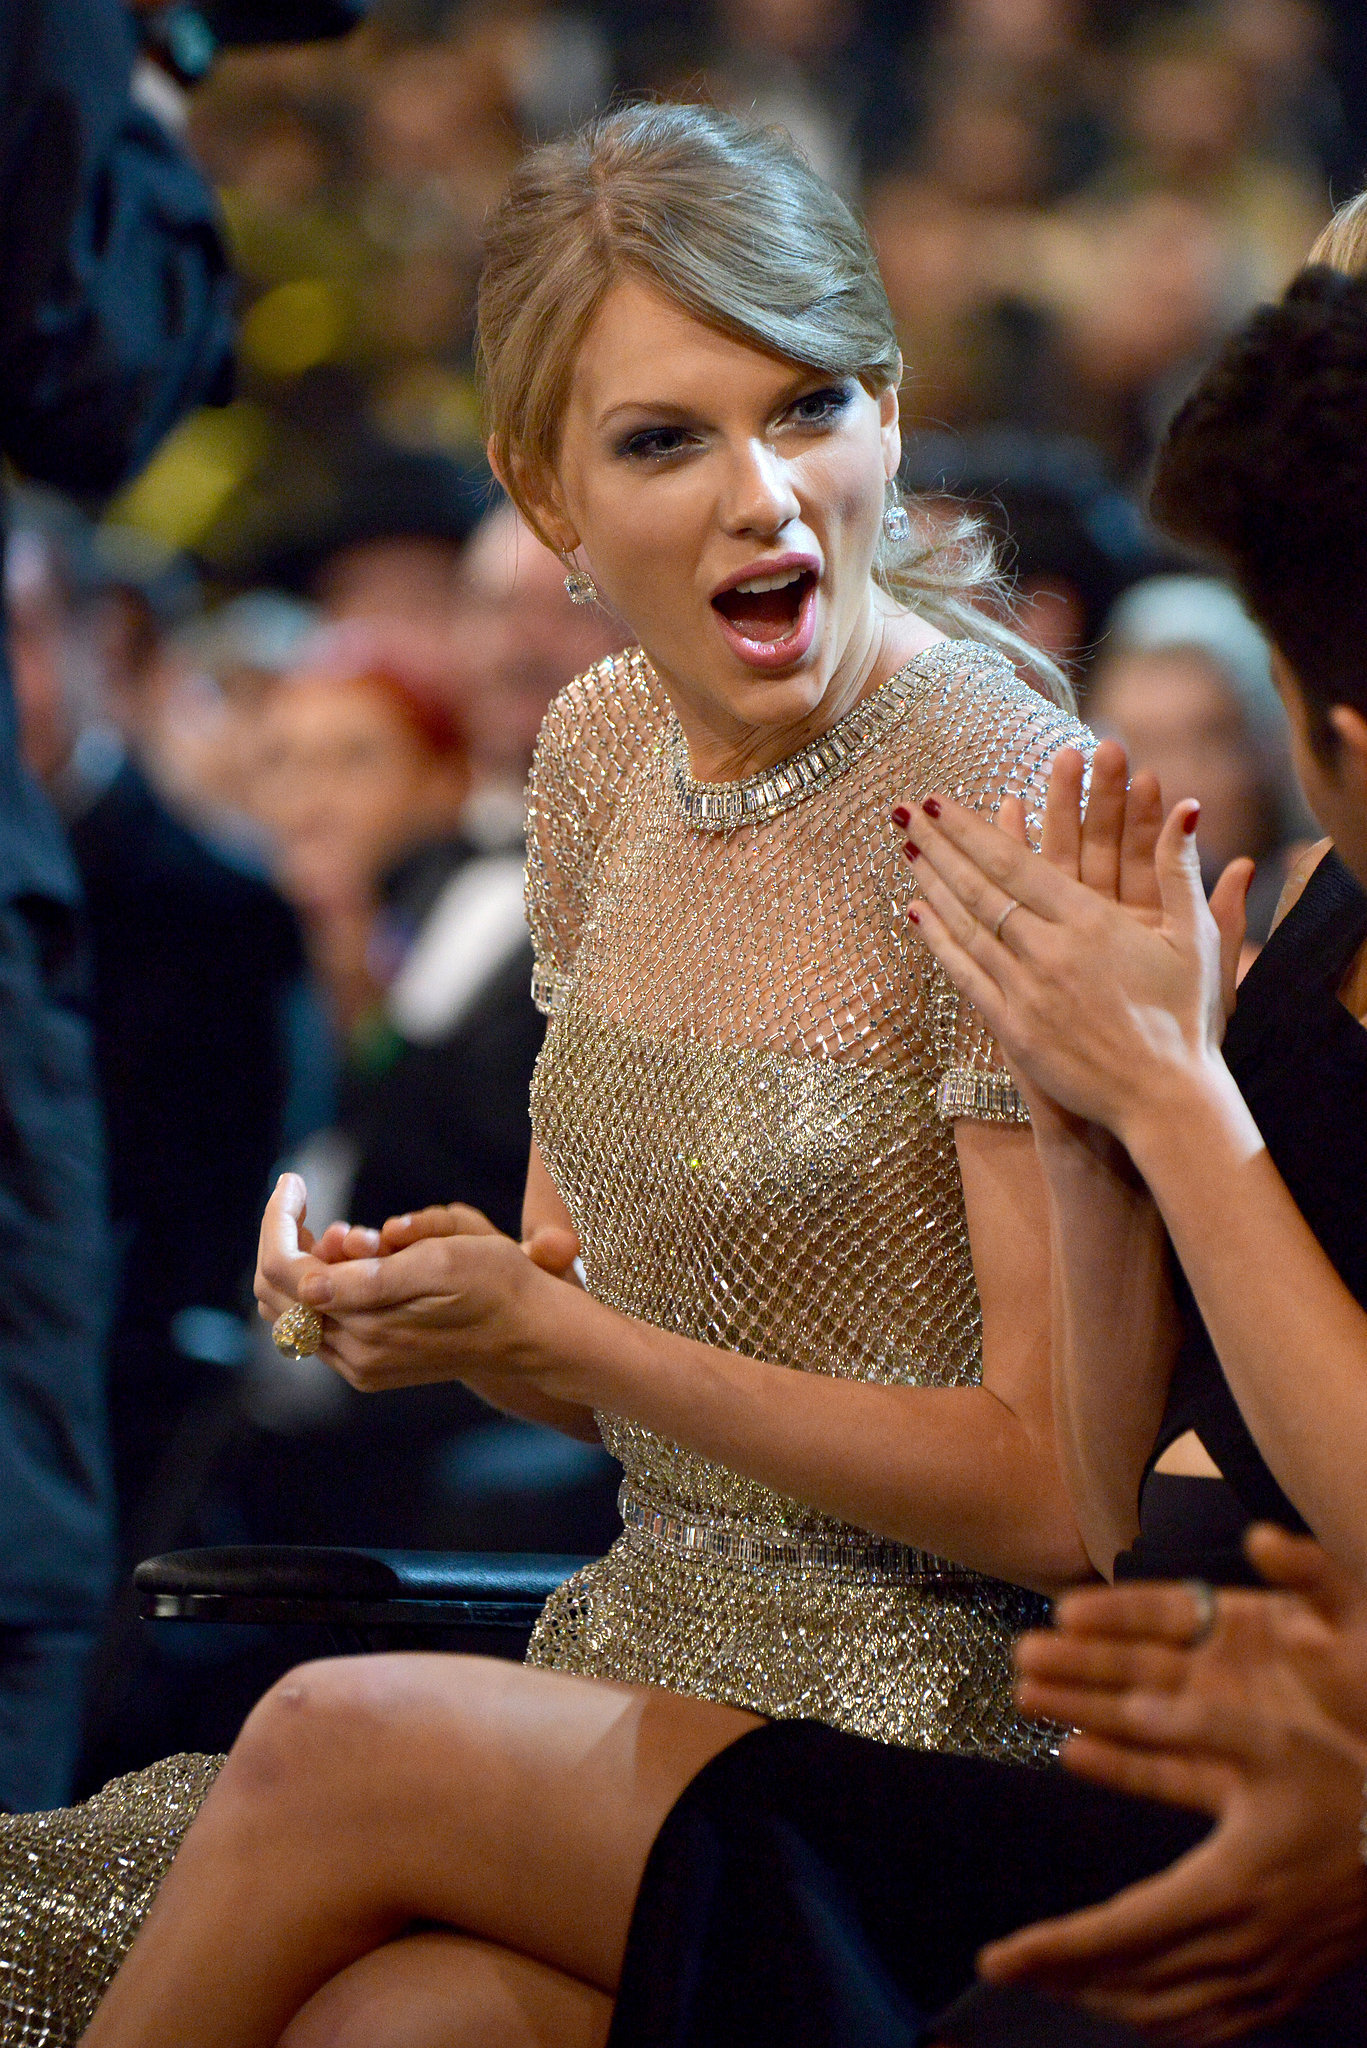 Taylor Swift had a serious surprised face in the audience.